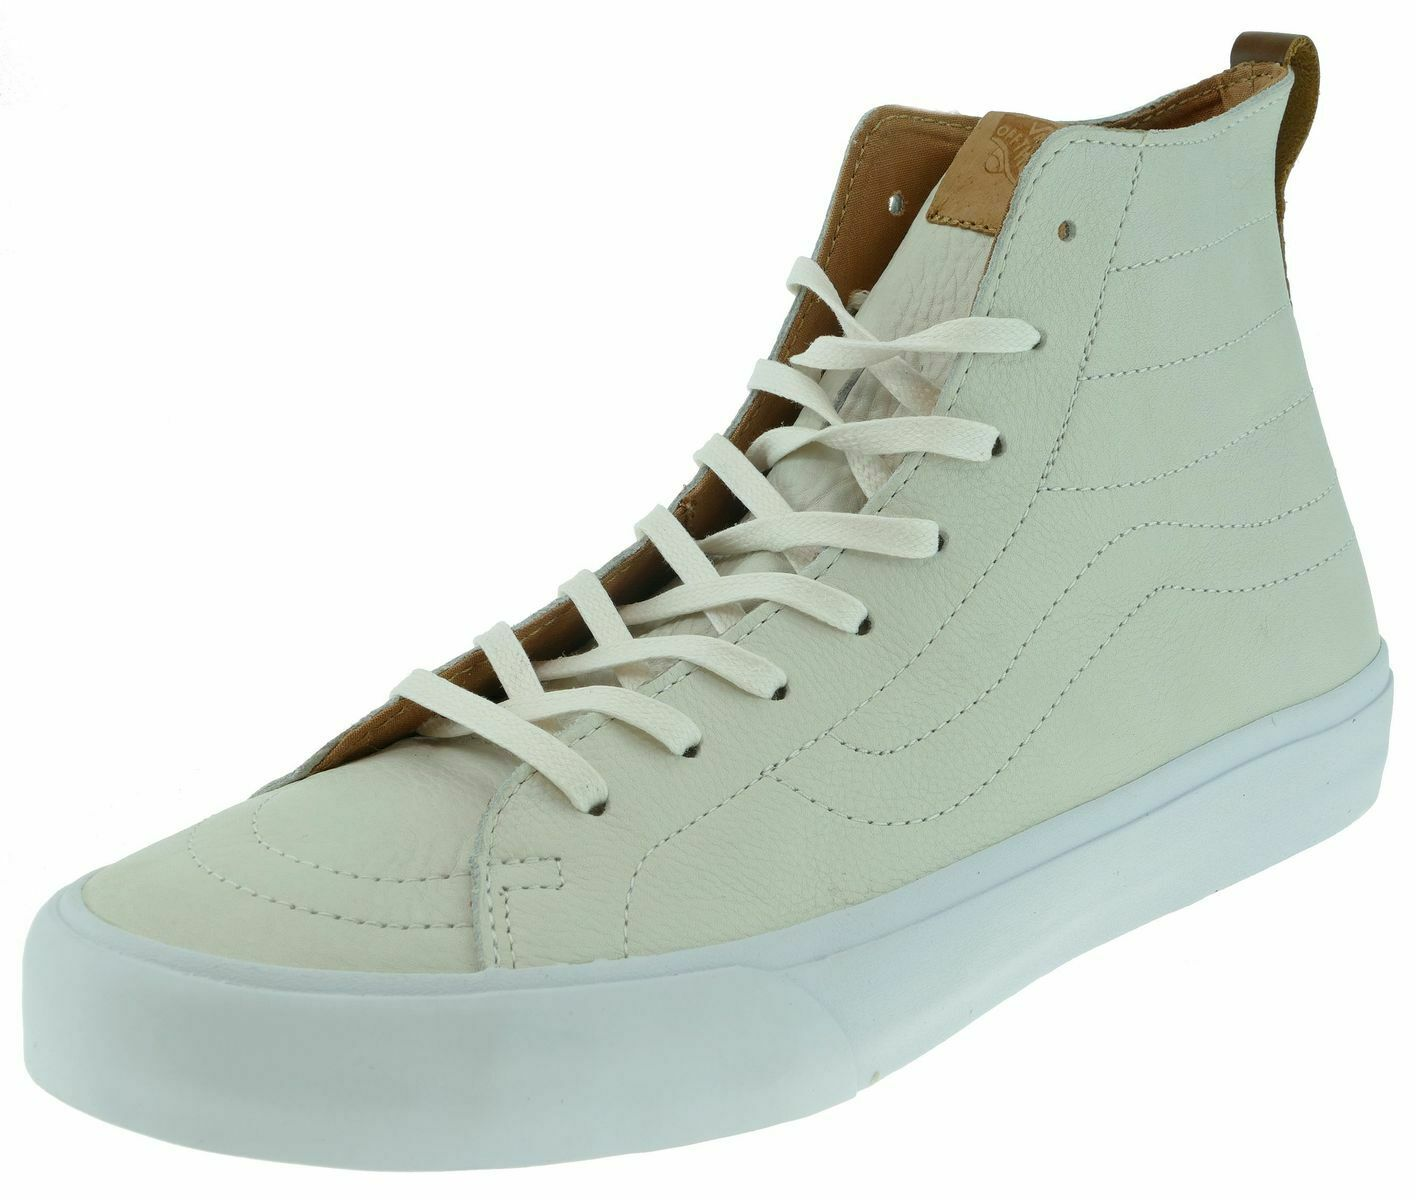 Vans sk8-hi lance CA California collection Premium Leather hiver blanc taille 44